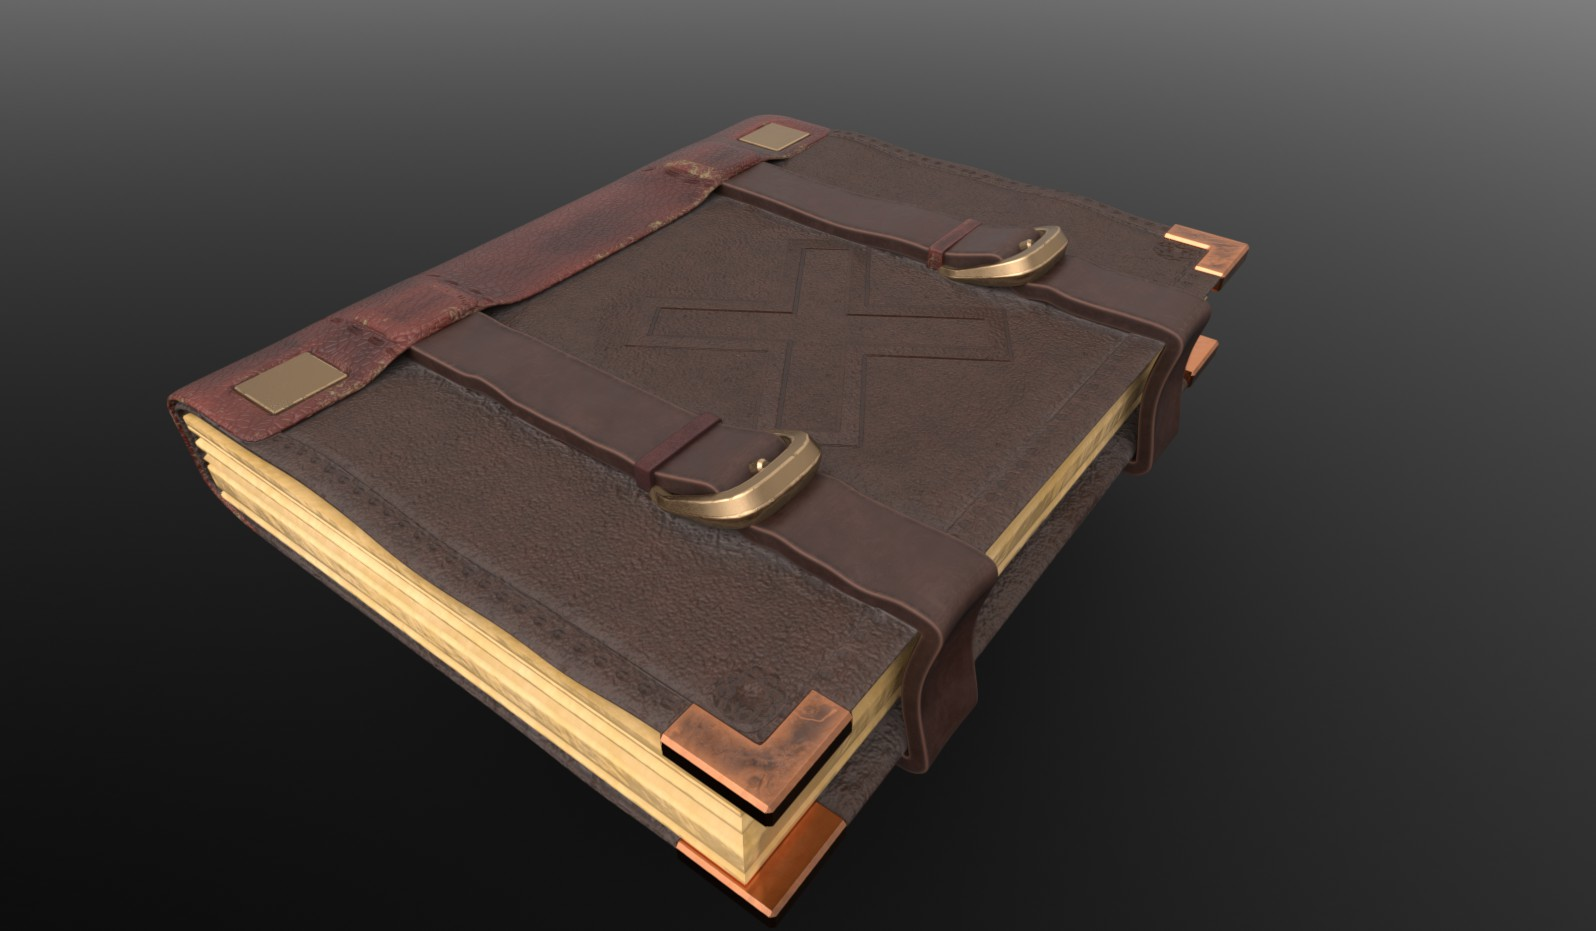 Old Leather Medic Book